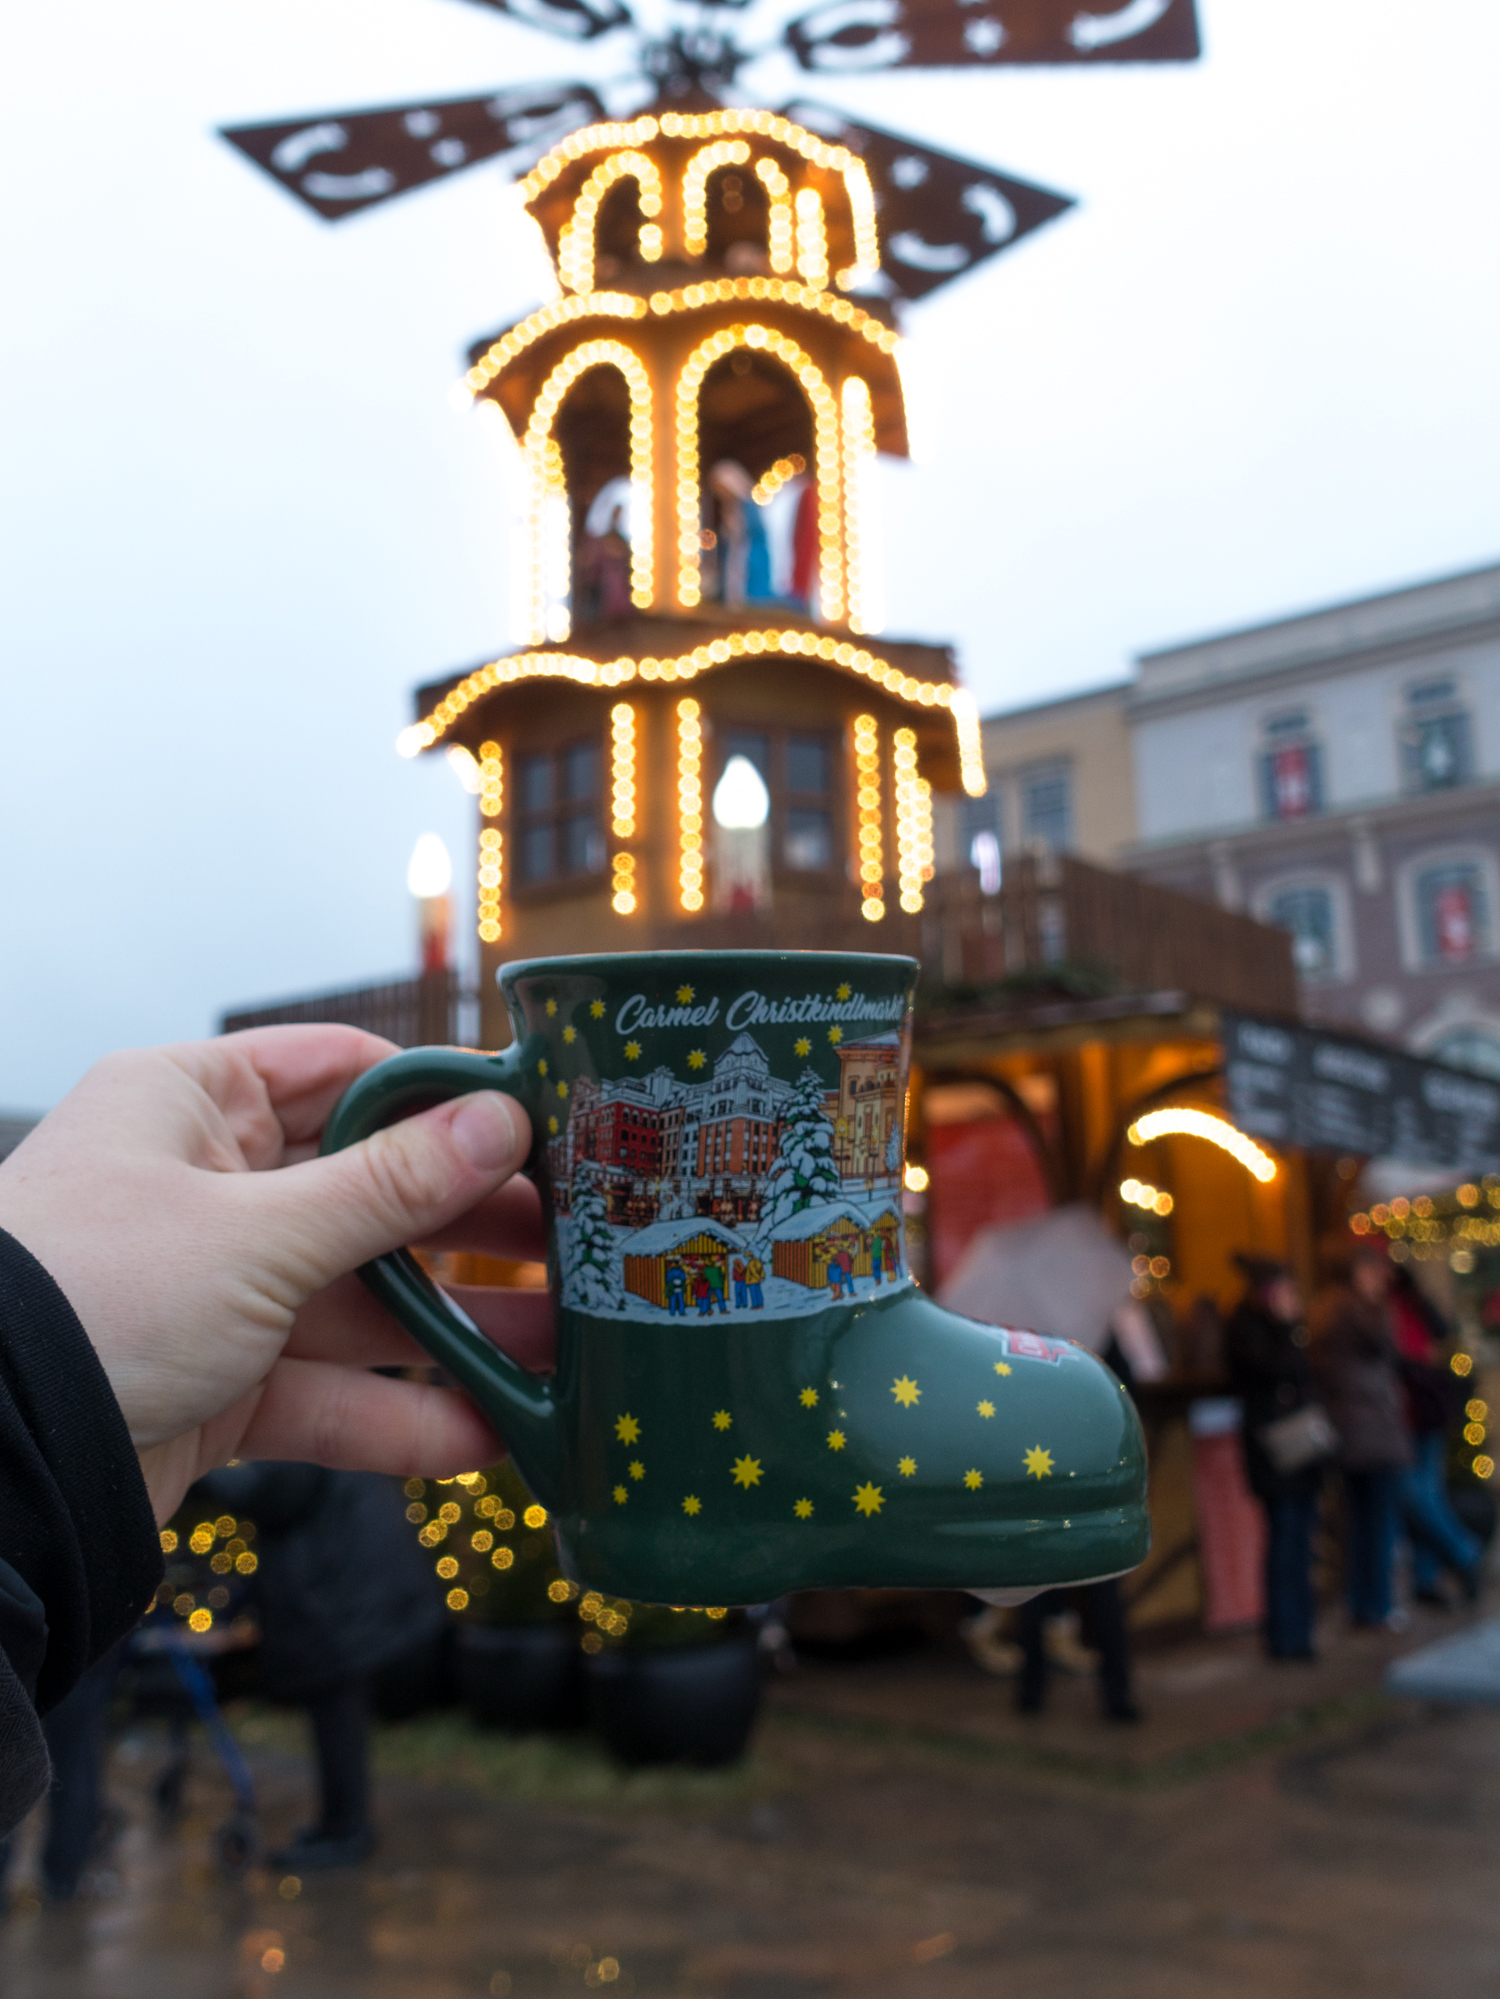 While strolling around the Christmas market, enjoy a mug of Gluhwein—a traditional hot mulled wine. #Christmas #travel #wine #holiday #Indiana